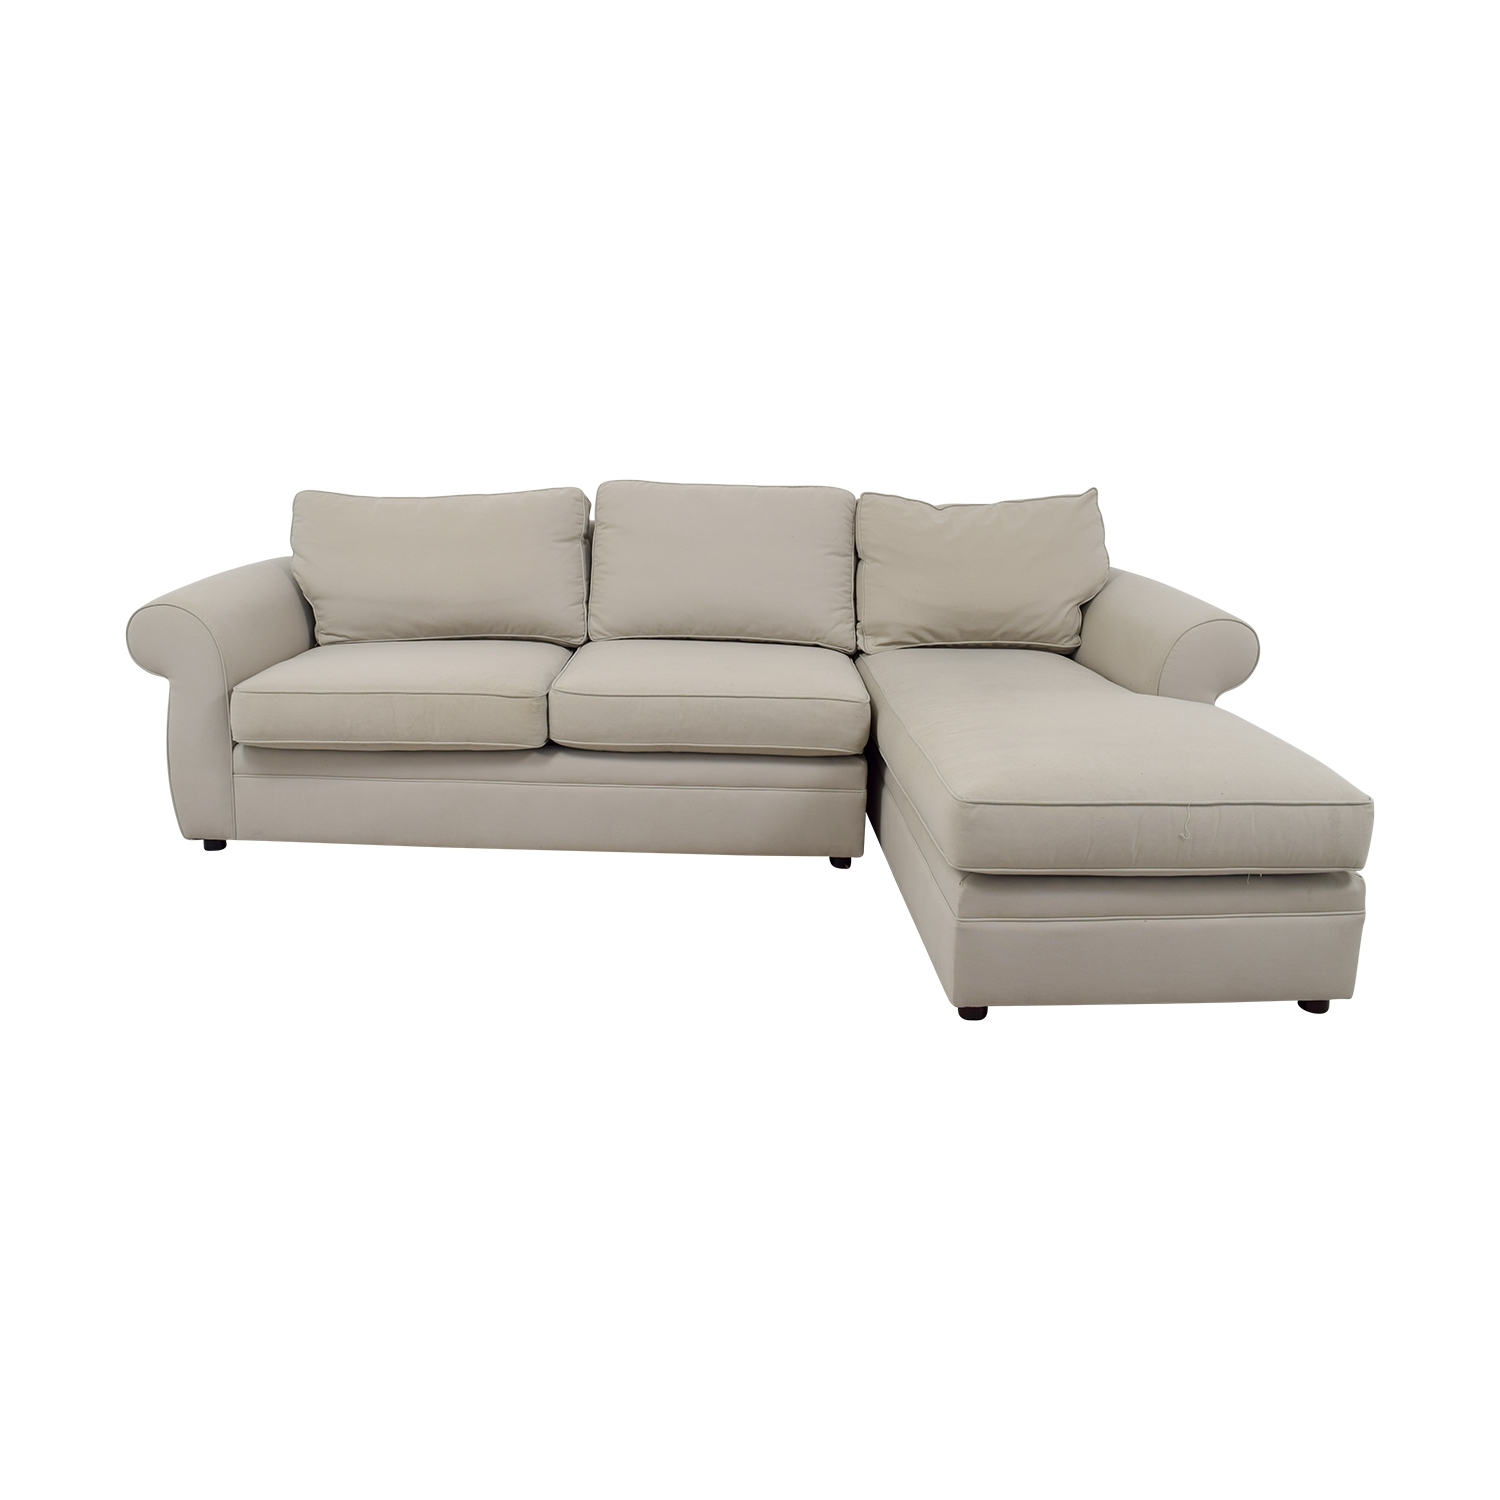 [%76% Off – Pottery Barn Pottery Barn Townsend Cream Upholstered Within Well Known Pottery Barn Chaises|Pottery Barn Chaises For Famous 76% Off – Pottery Barn Pottery Barn Townsend Cream Upholstered|Most Recently Released Pottery Barn Chaises With 76% Off – Pottery Barn Pottery Barn Townsend Cream Upholstered|Most Recent 76% Off – Pottery Barn Pottery Barn Townsend Cream Upholstered Within Pottery Barn Chaises%] (View 5 of 15)